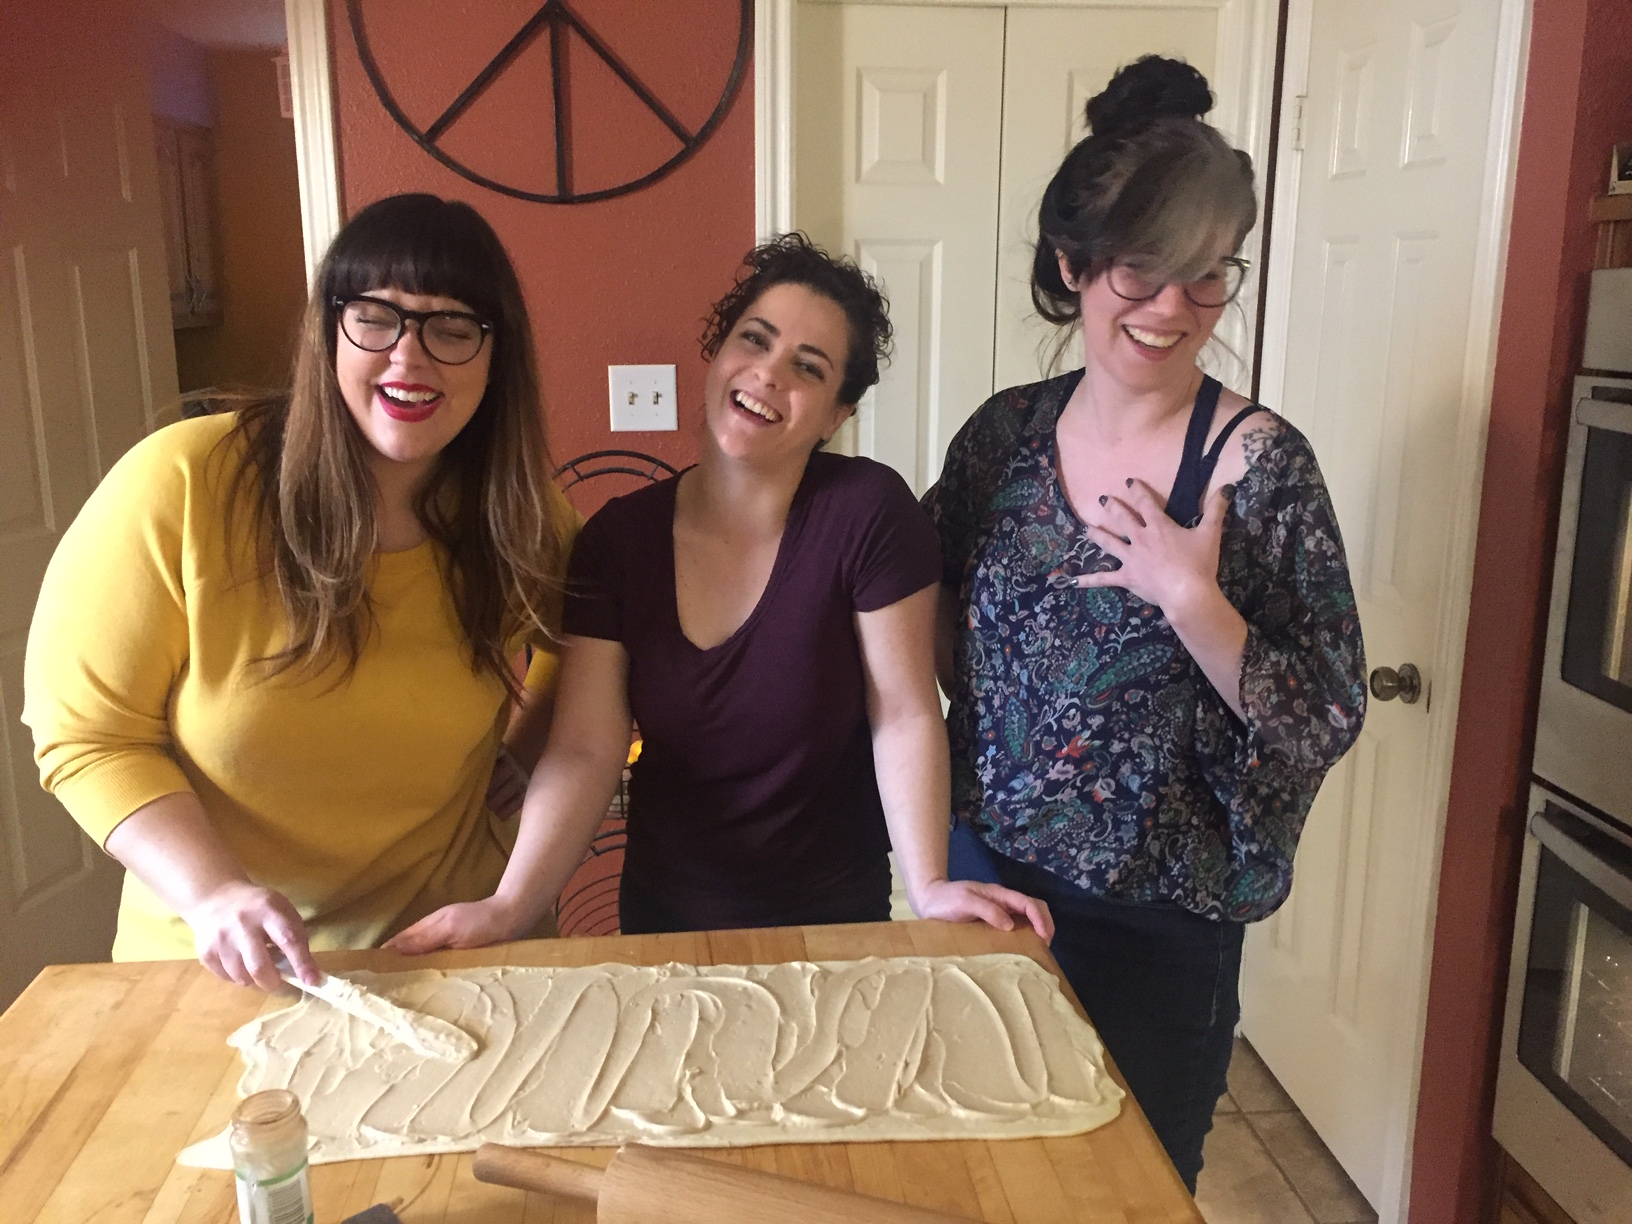 Just some babes and their cake-batter-butter-covered dough.